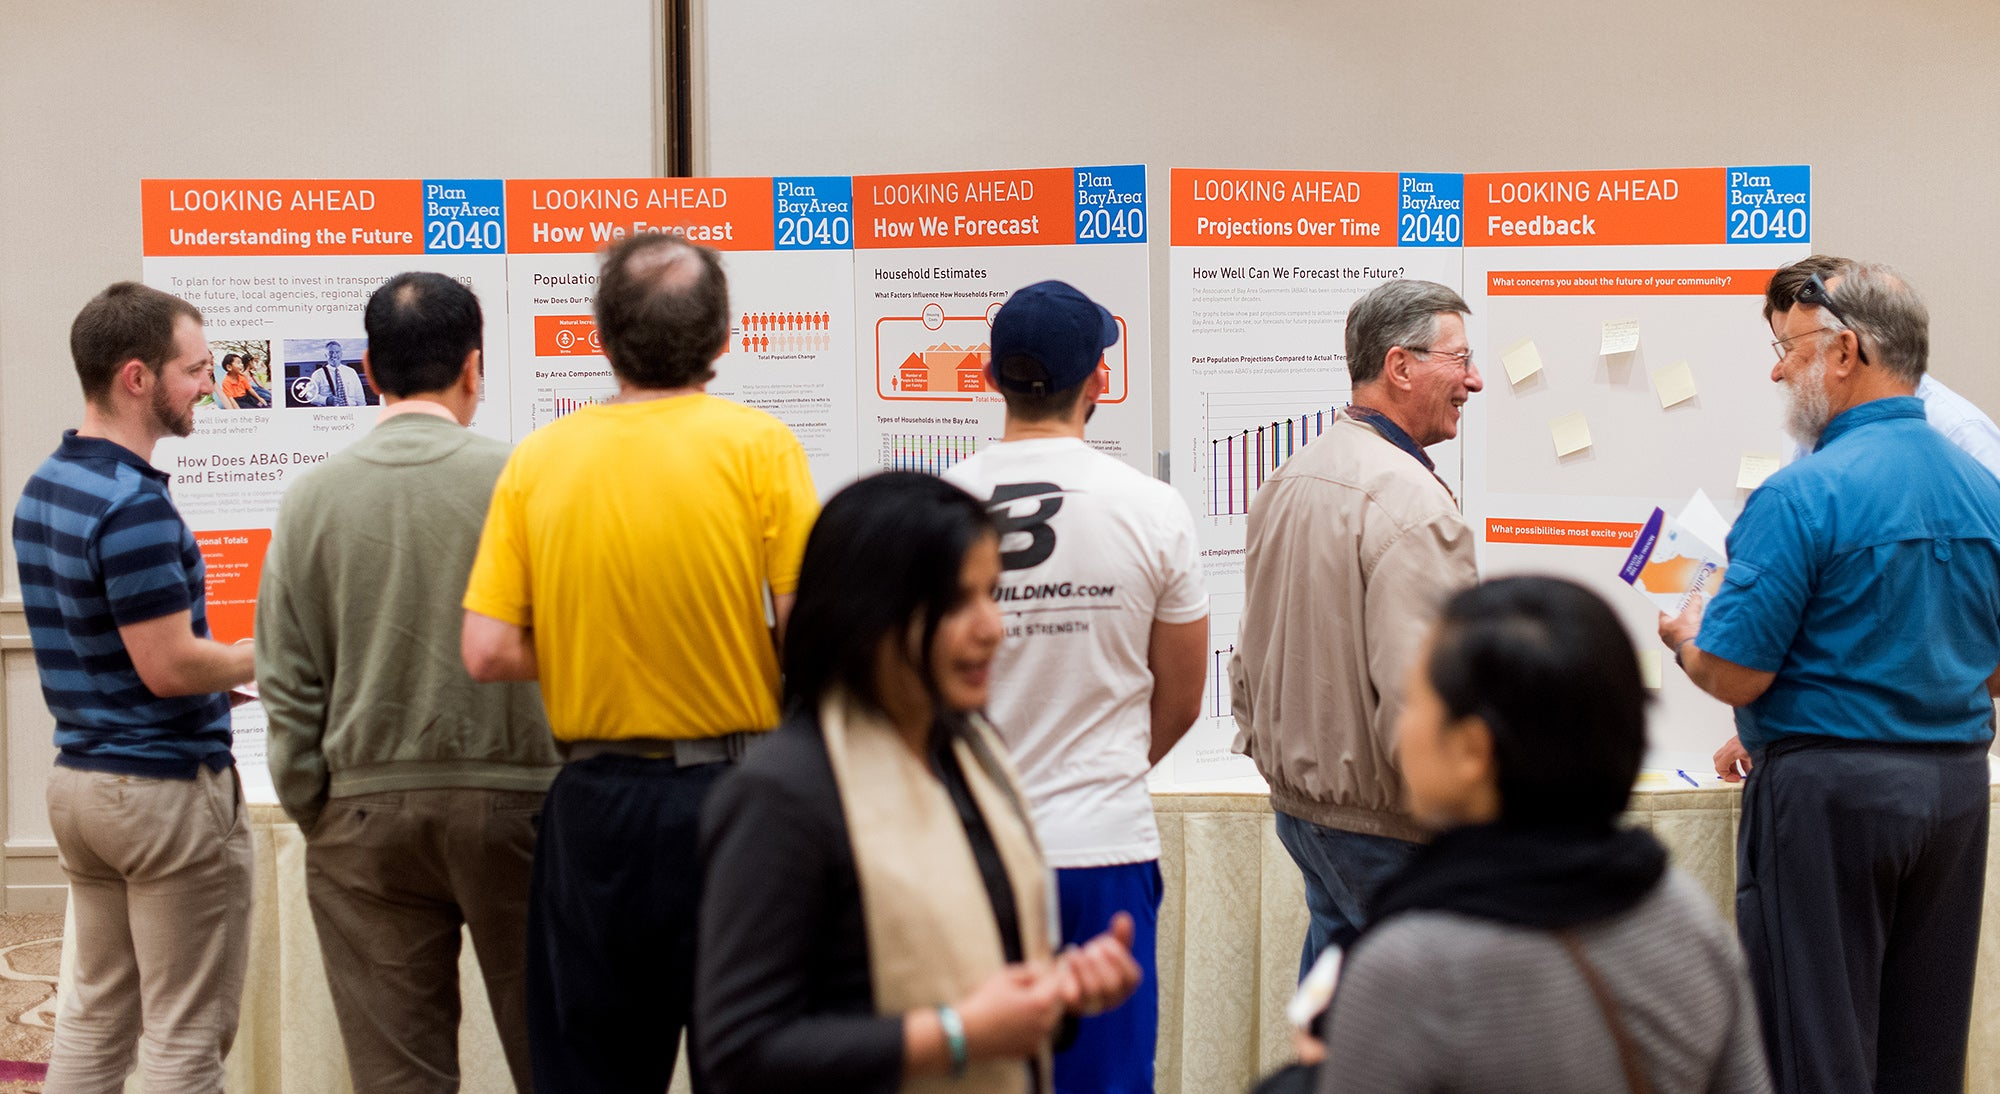 Members of the public examine the information displays